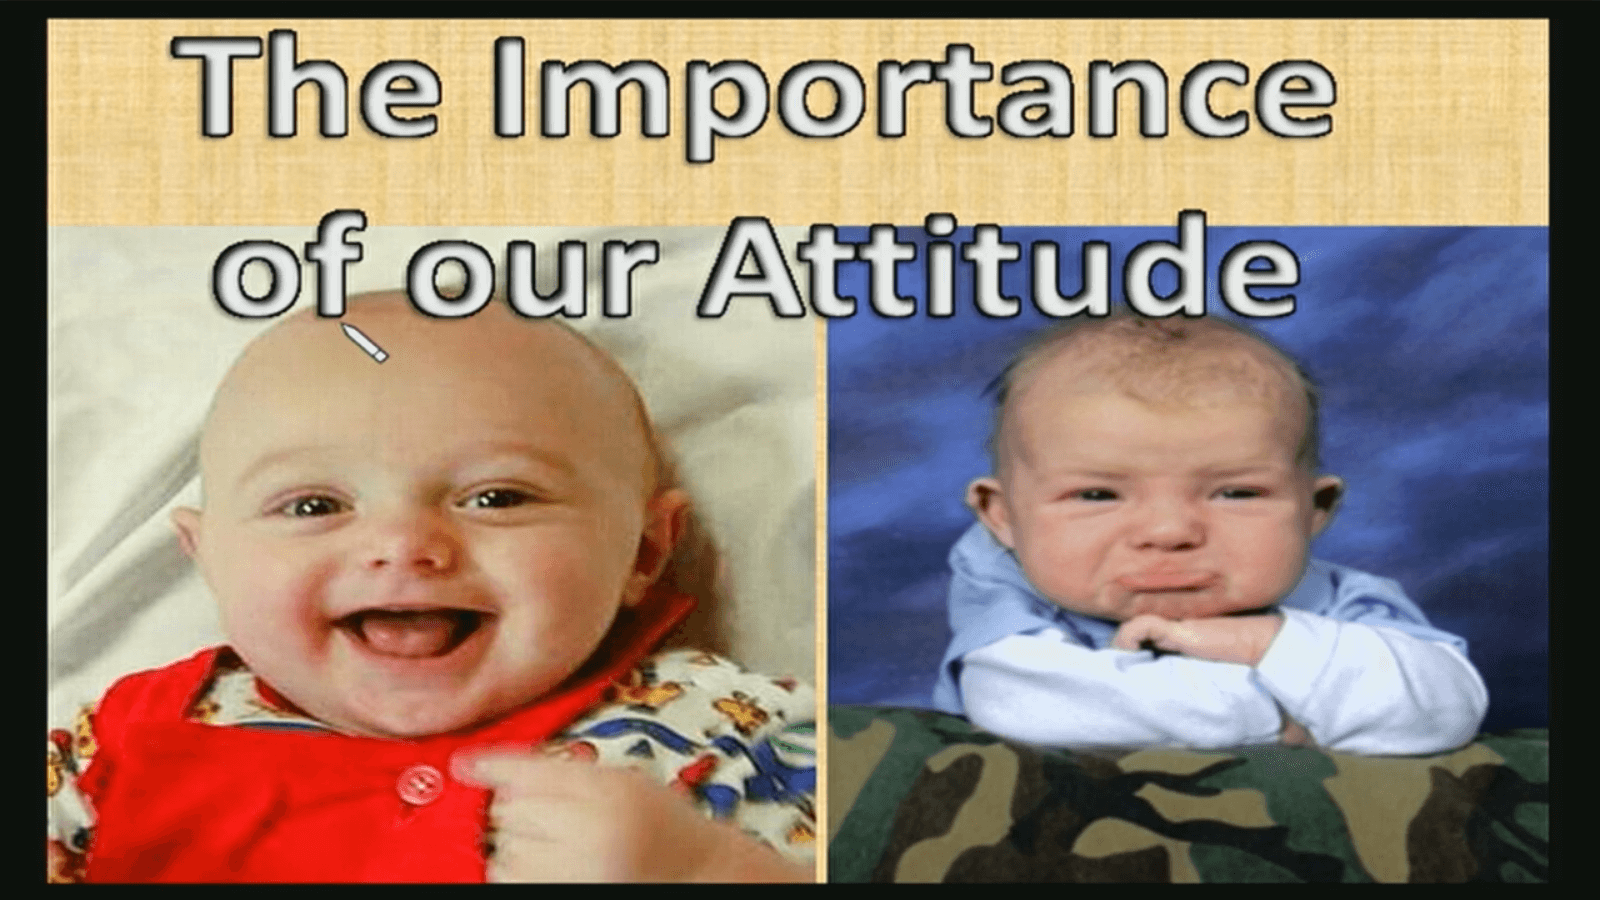 The Importance of our Attitude